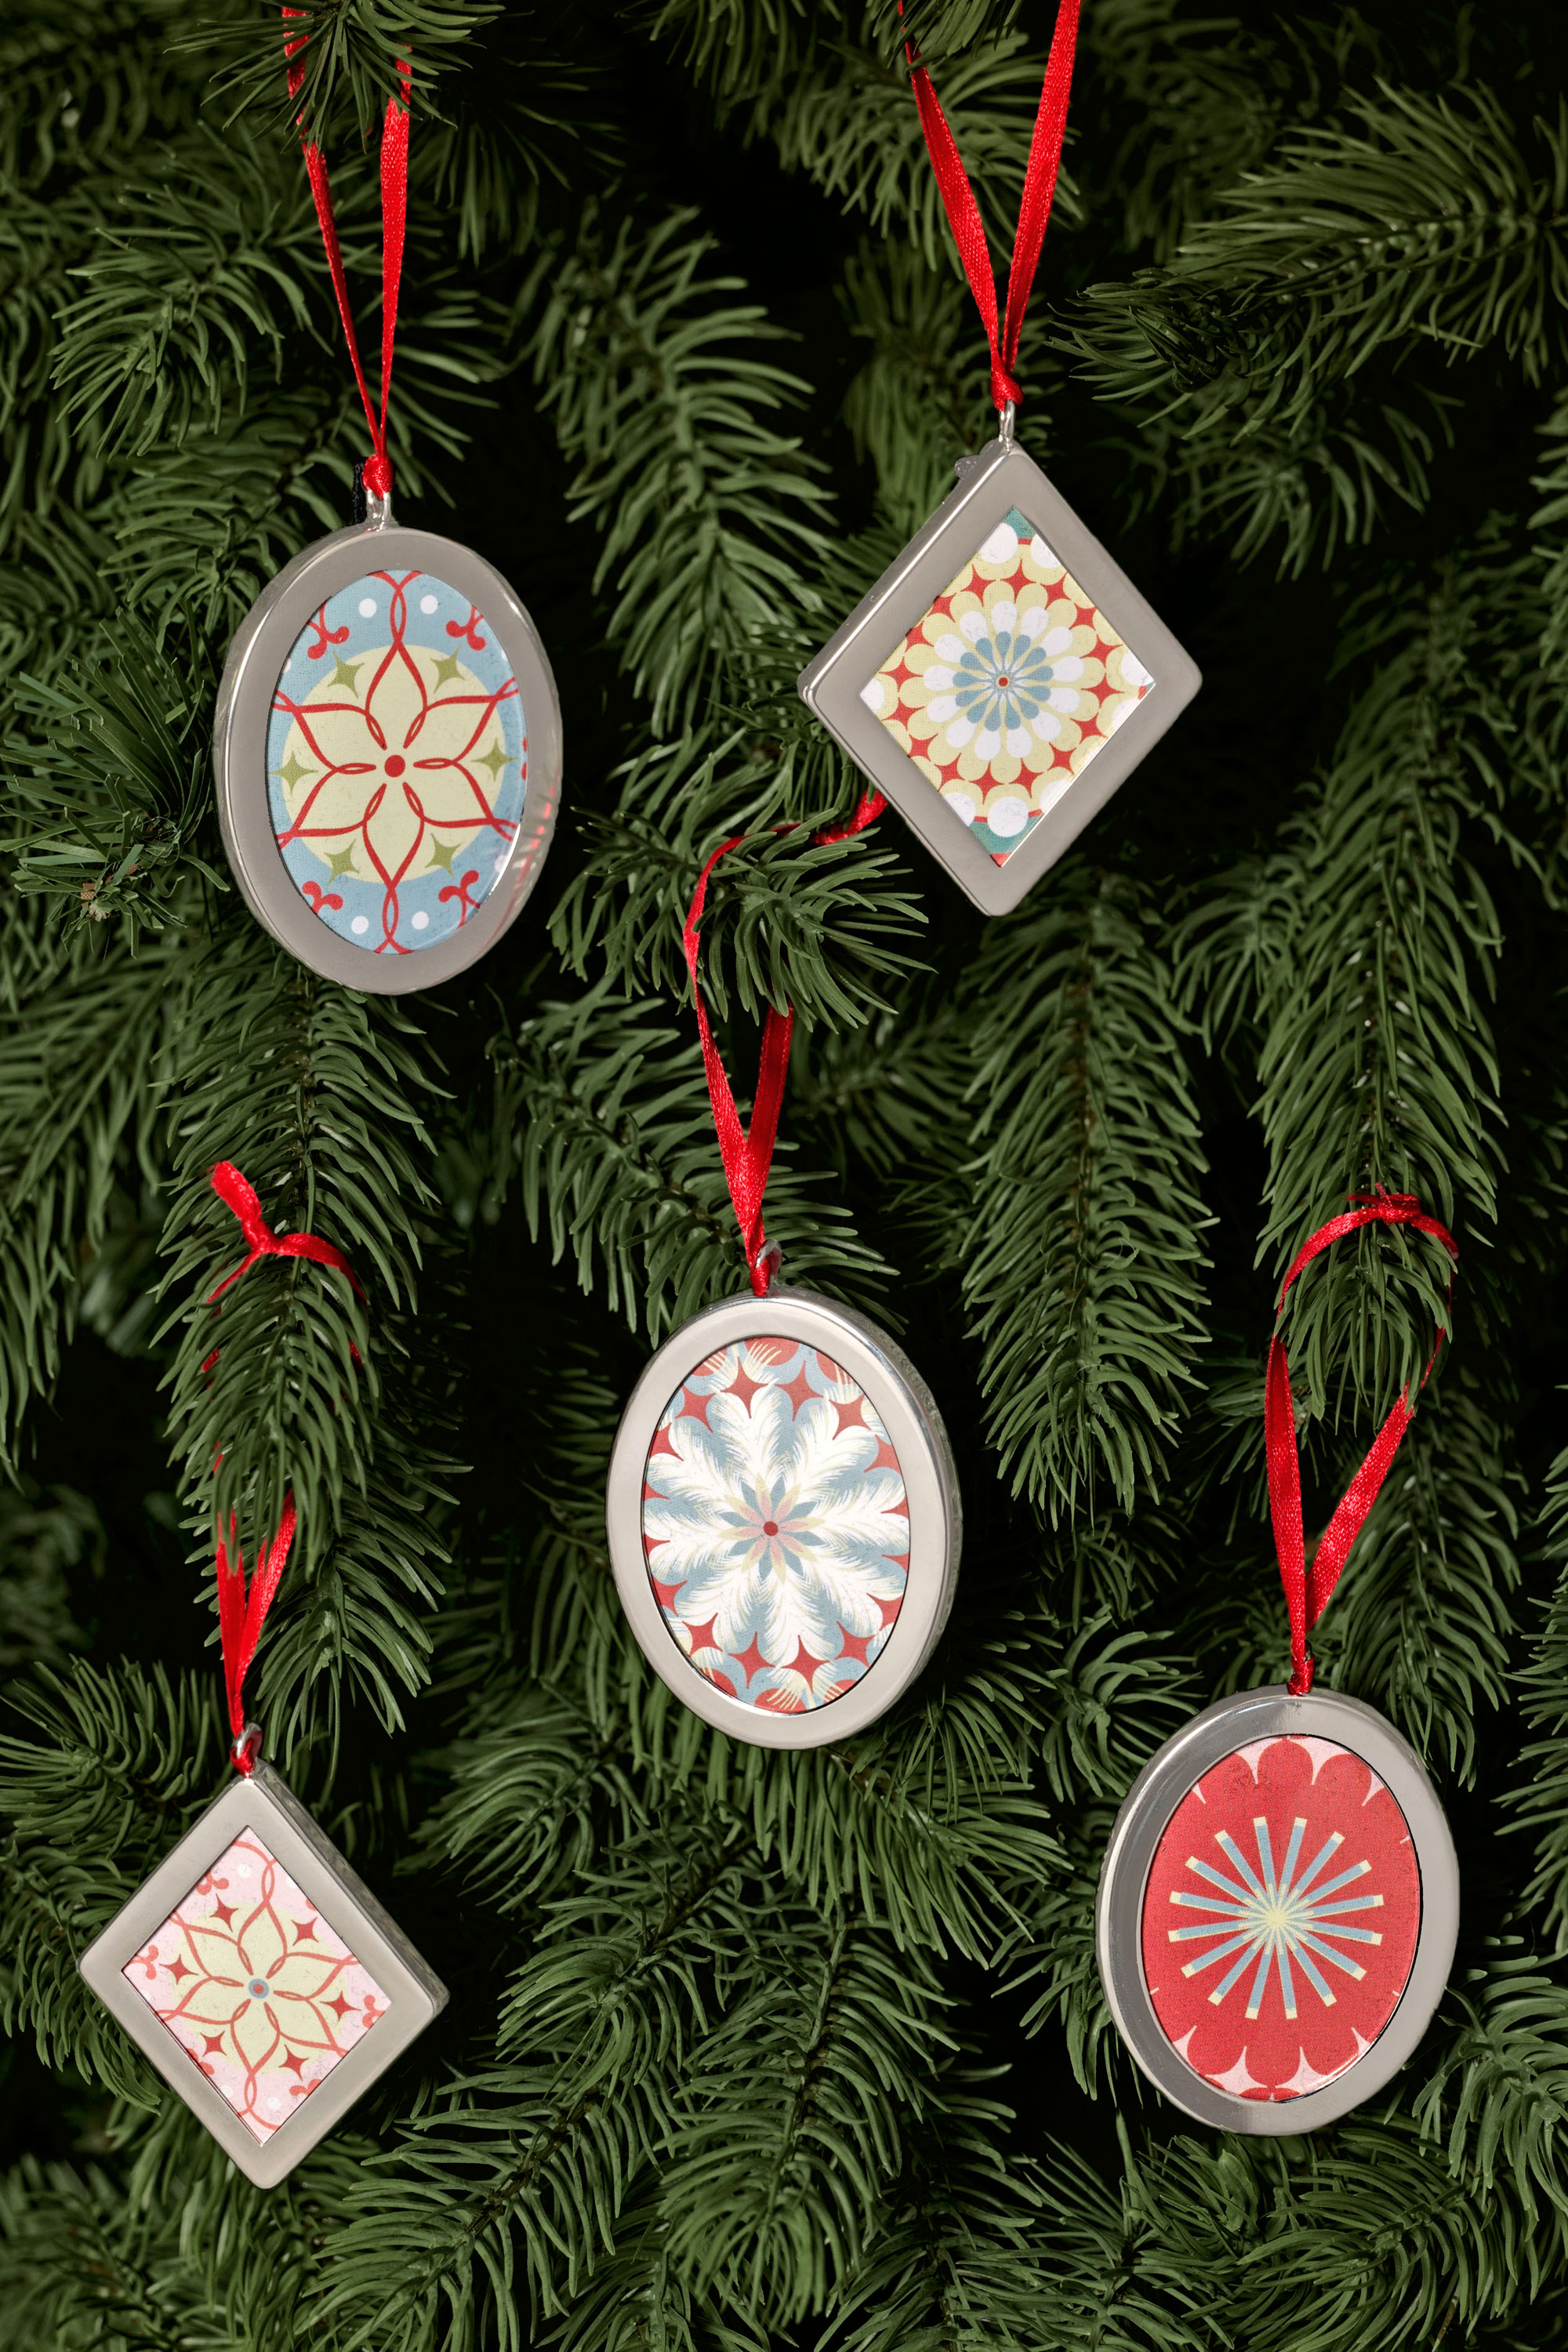 55 homemade christmas ornaments diy crafts with christmas tree ornaments